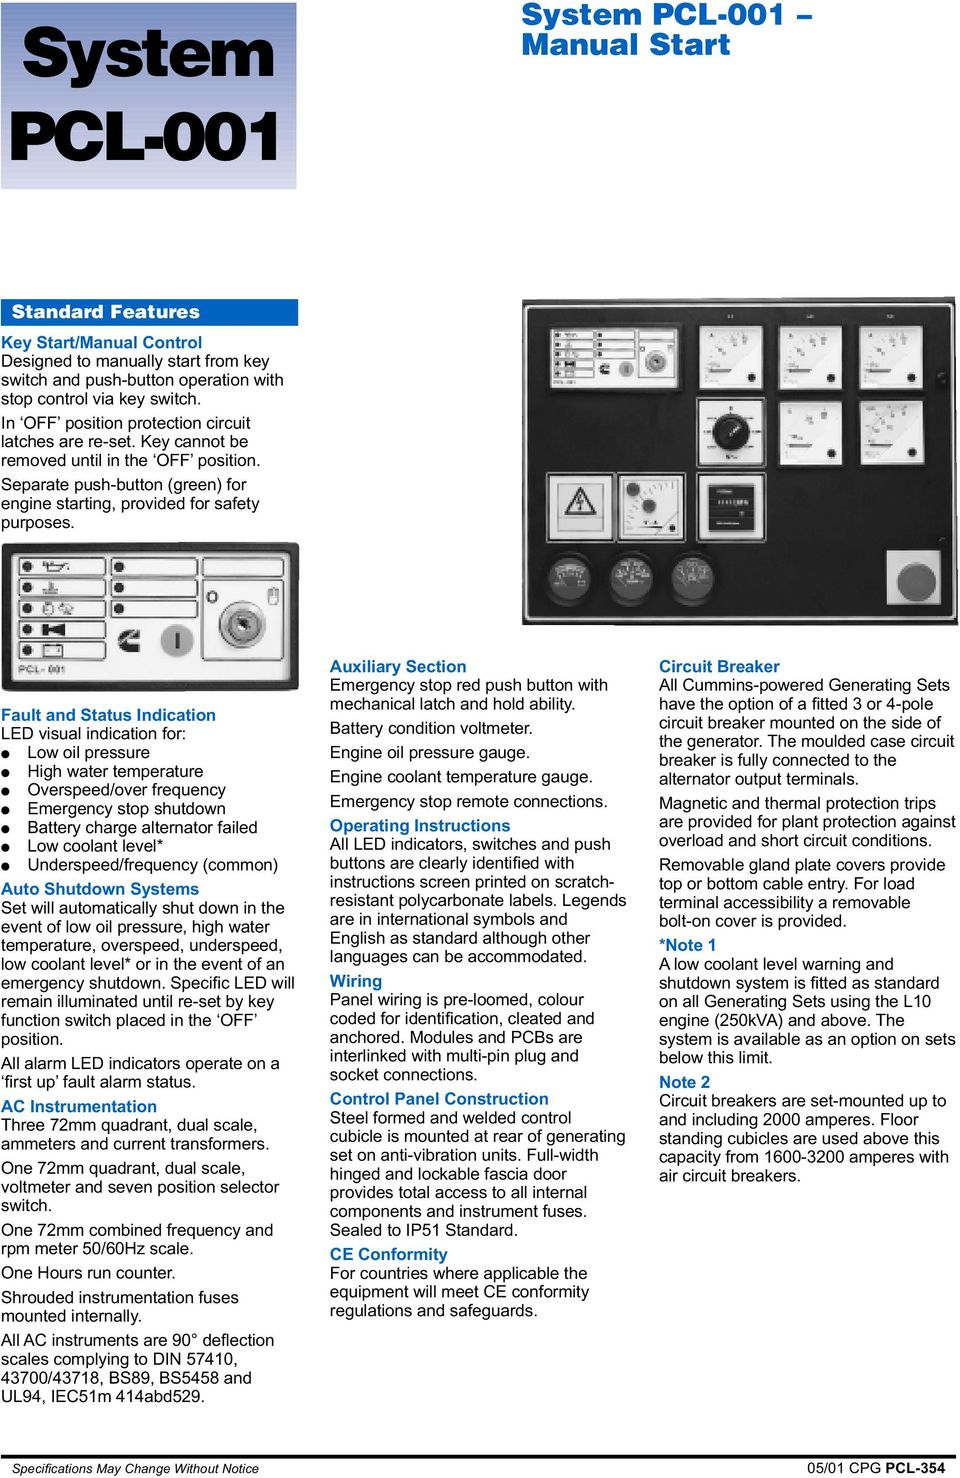 Power Generation Control Pcl System Generator Set Pdf Circuitbreaker S Type Hgi Can Be Used As Fault And Status Indication Led Visual For Low Oil Pressure High Water Temperature Overspeed